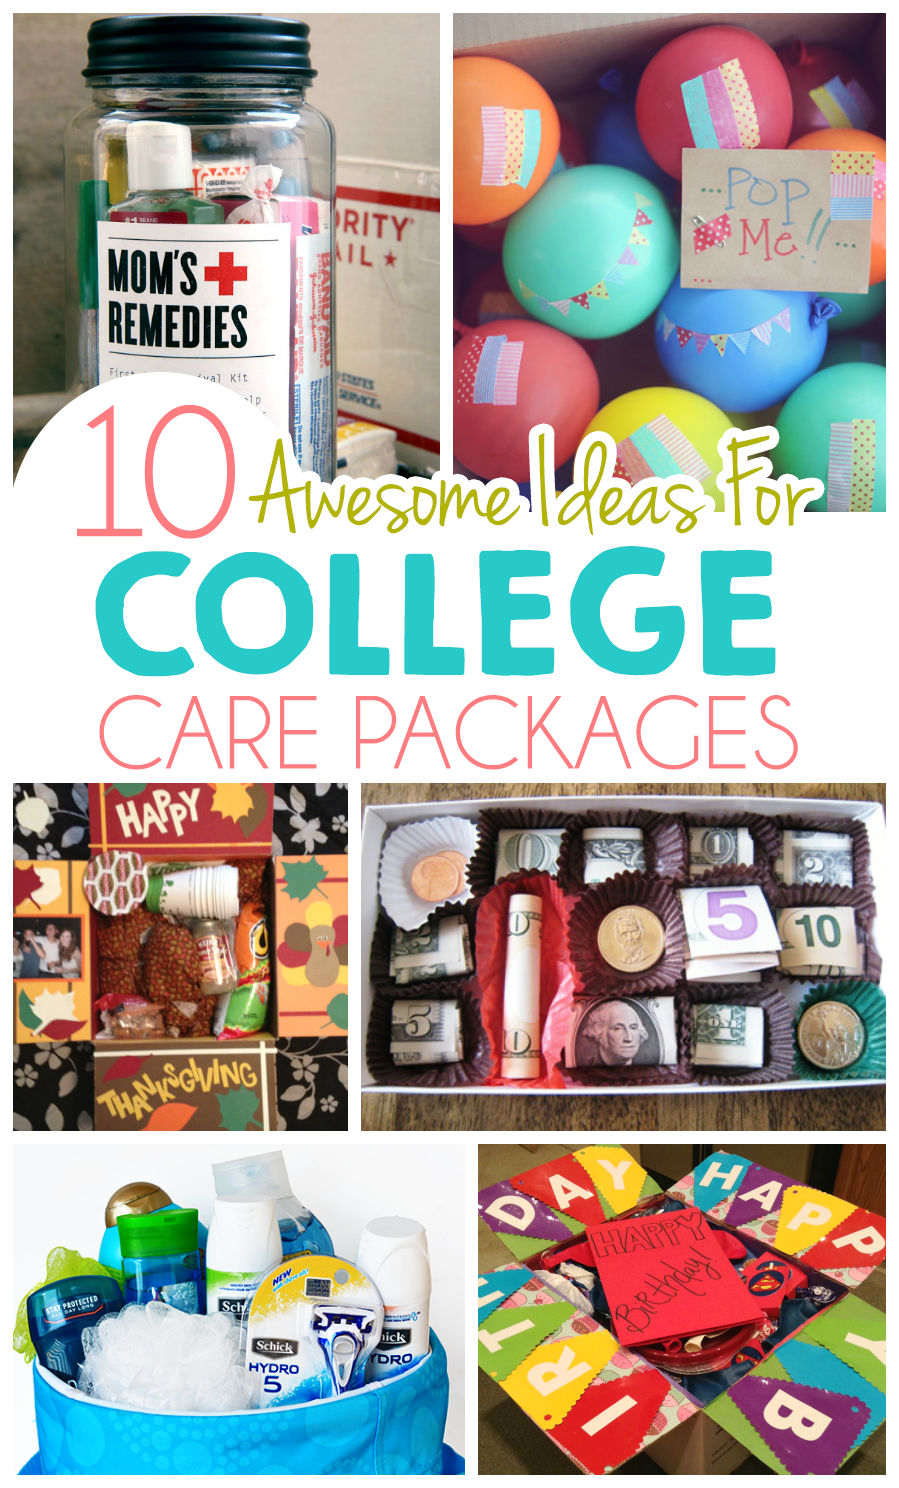 Pics photos funny college survival kit ideas - 10 Awesome Ideas For College Care Packages Ad